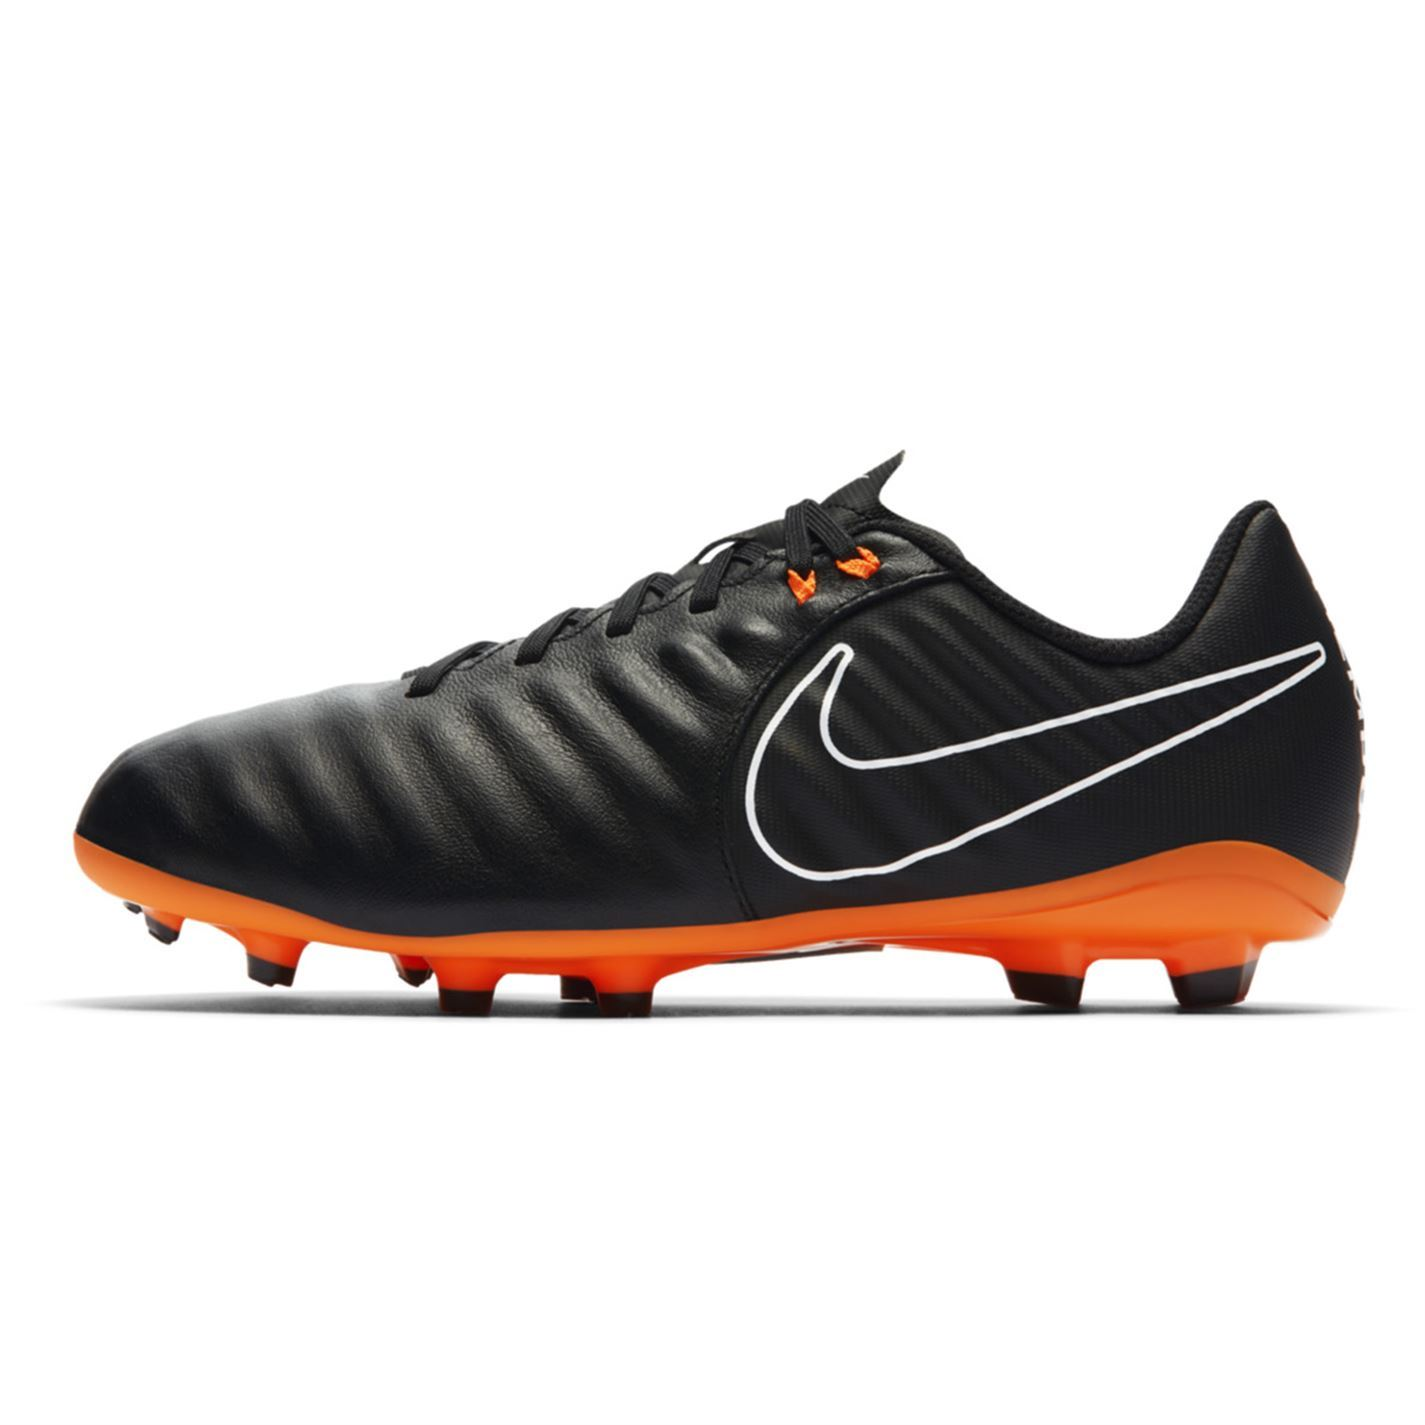 4aed13352aacf Nike Tiempo Legend Academy FG Football Boots Childs Black Soccer Shoes  Cleats